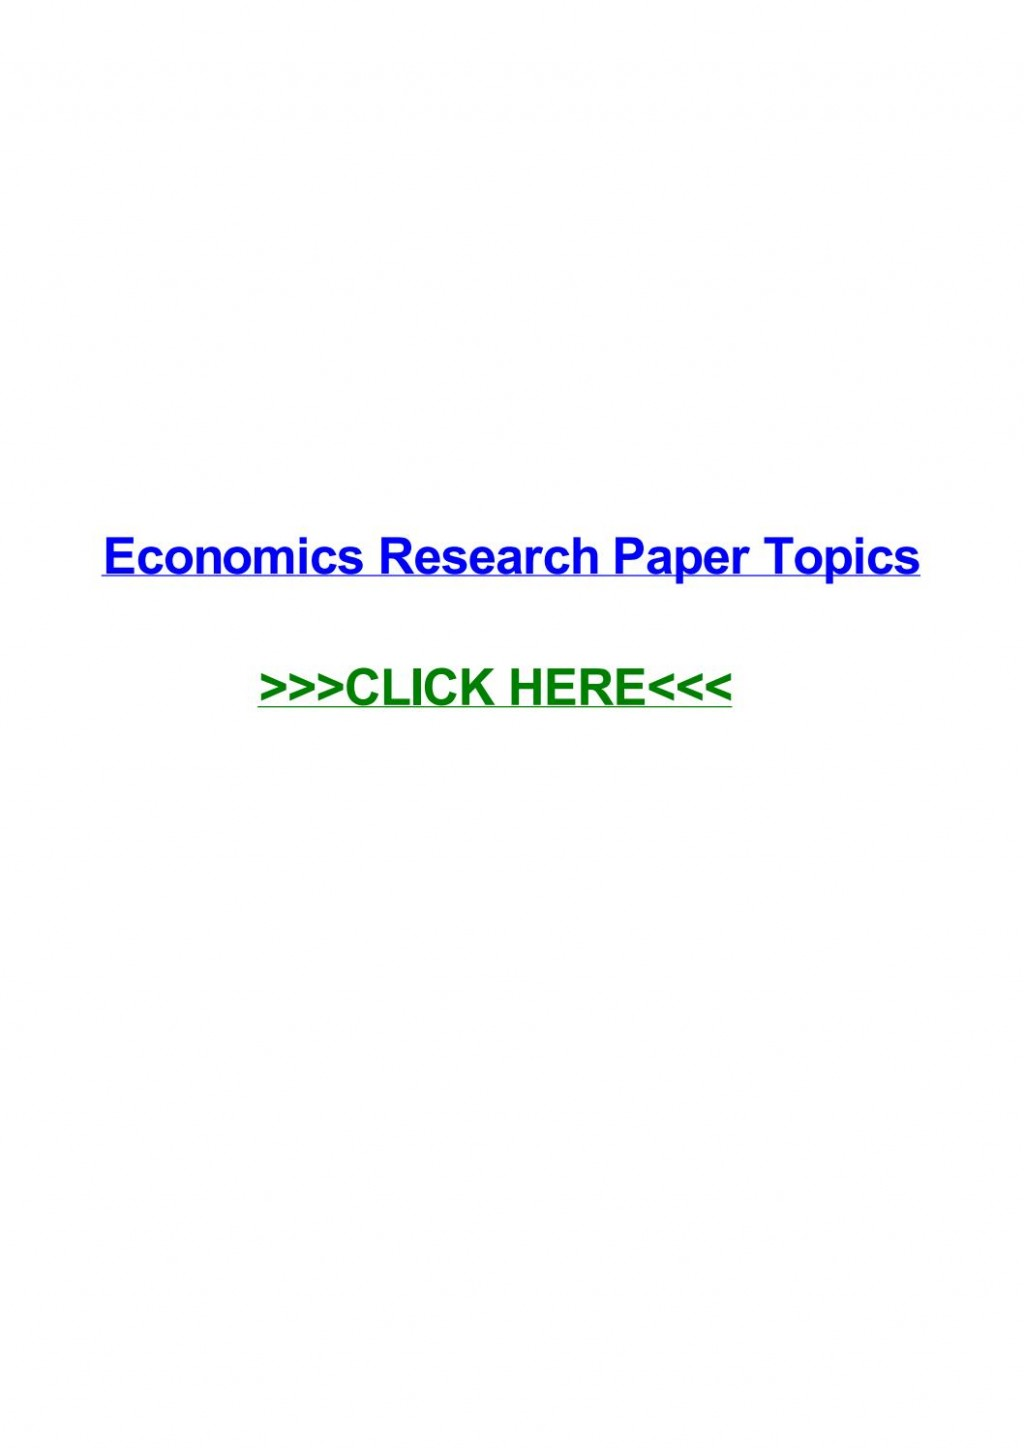 004 Research Paper Page 1 In Economics Stupendous Topics Finance Business International Large